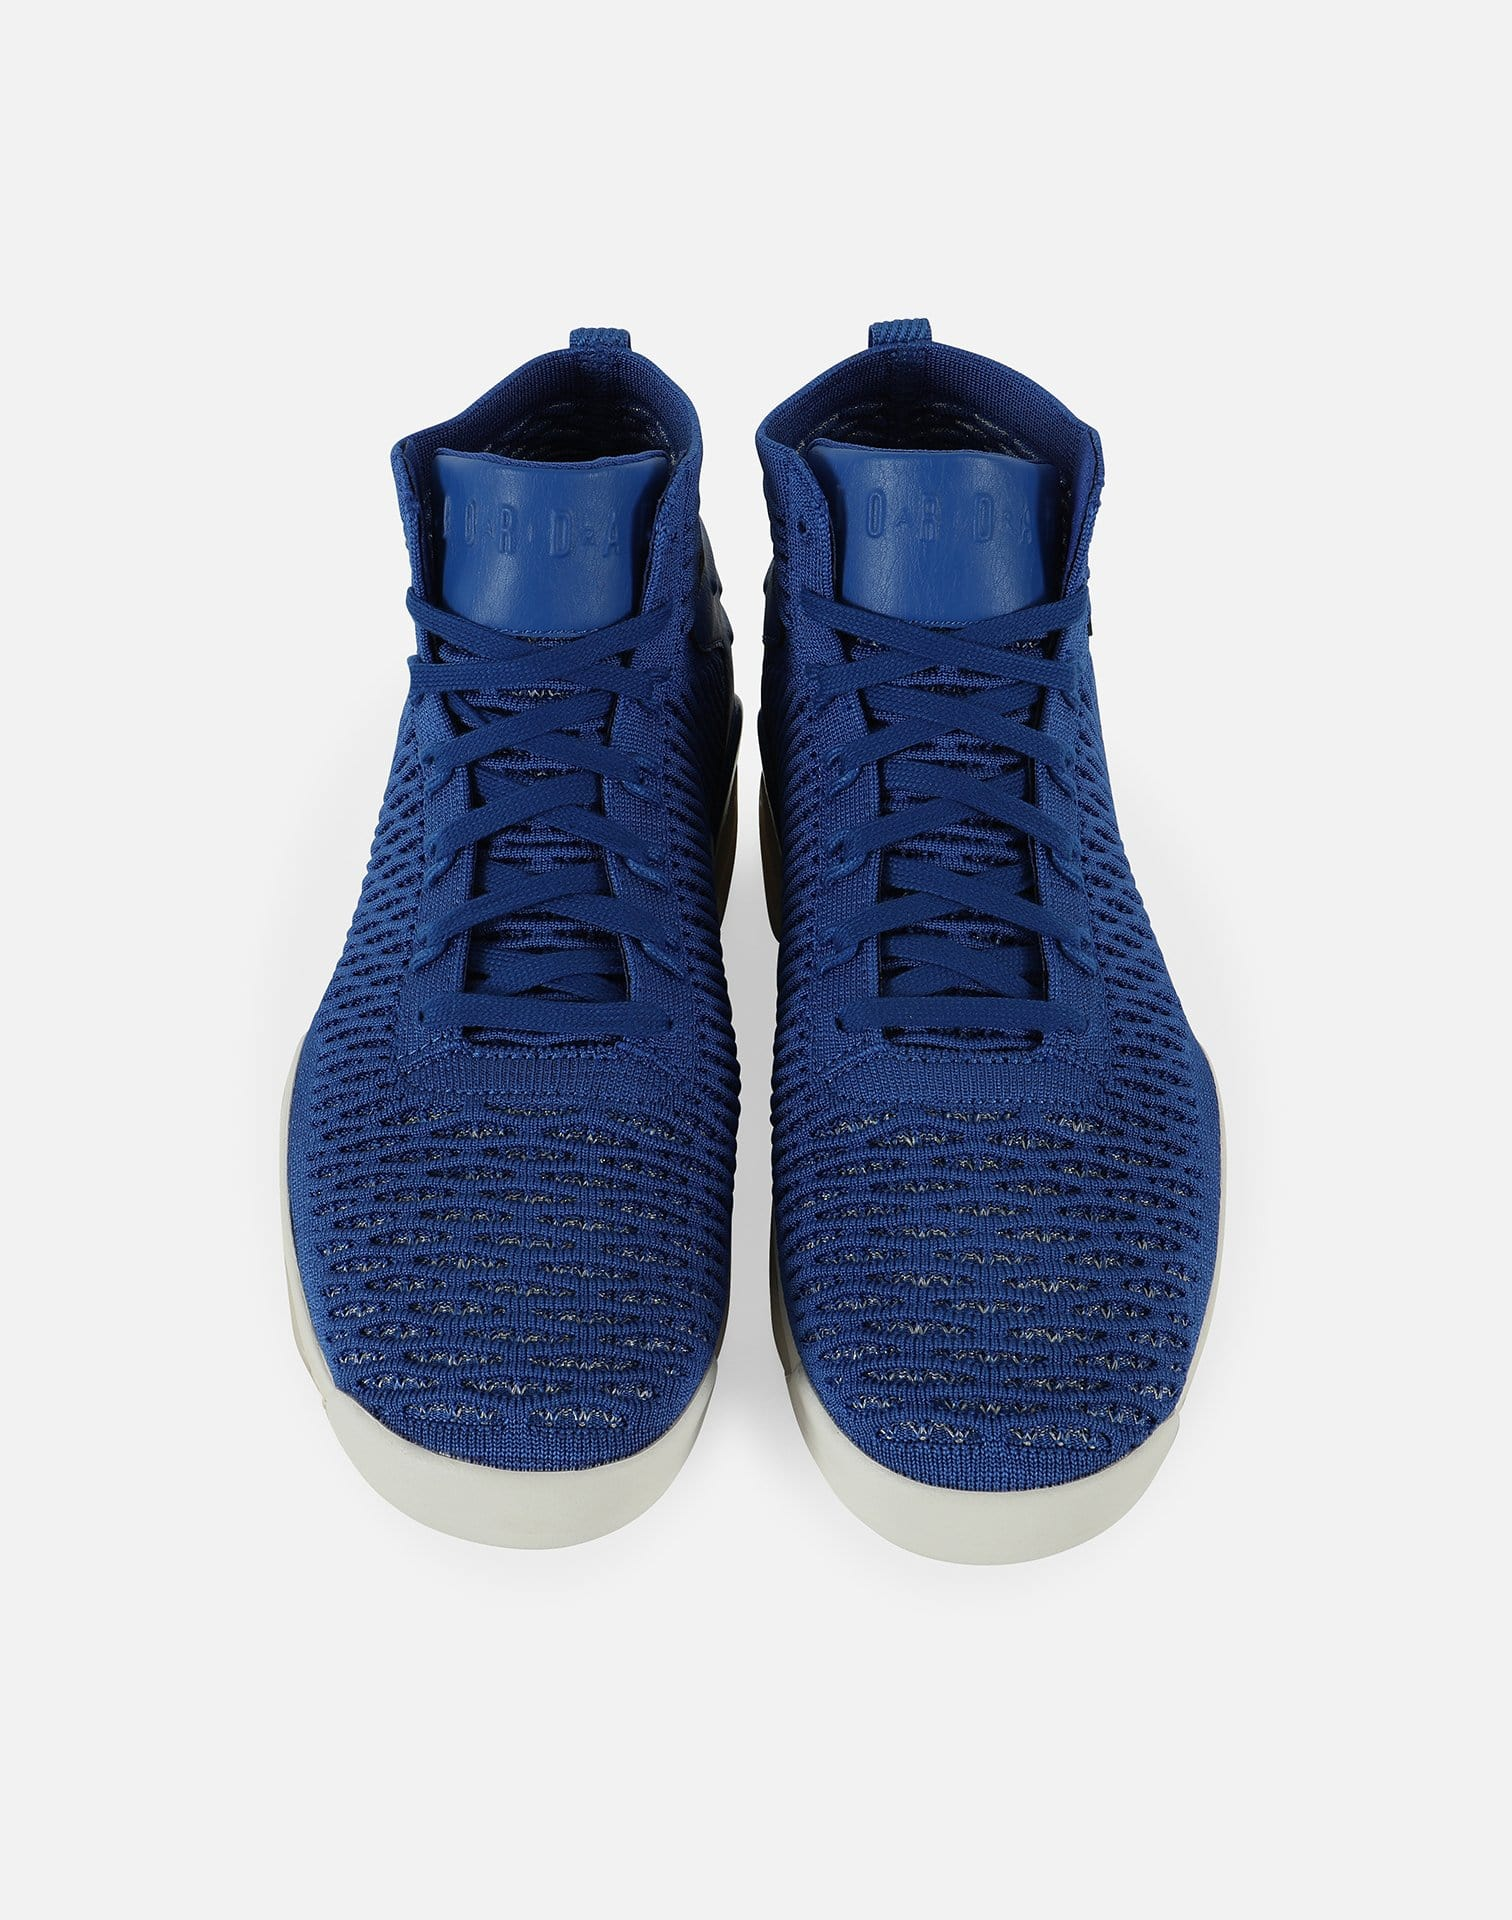 Jordan Men's Flyknit Elevation 23